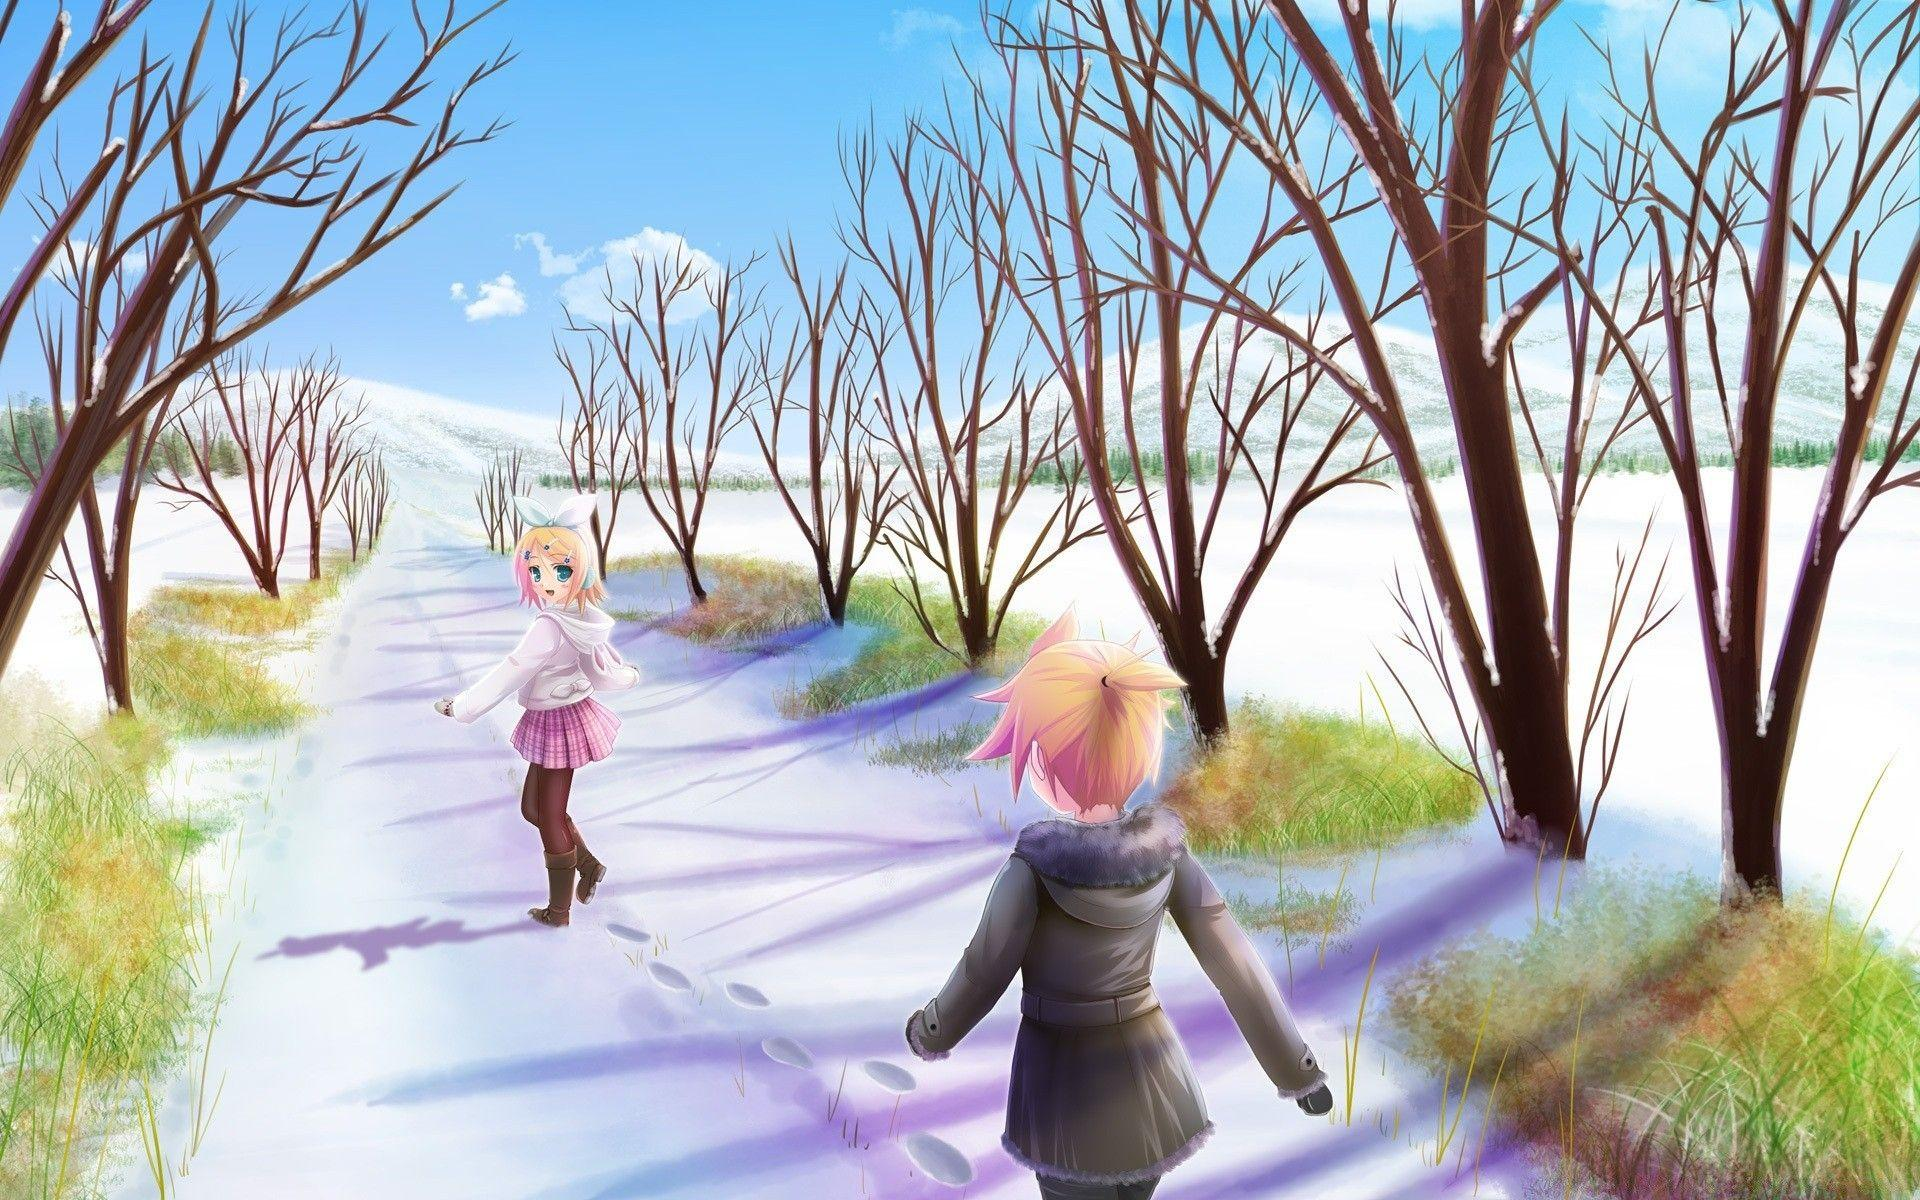 Anime Winter Scene Android Wallpapers For Free